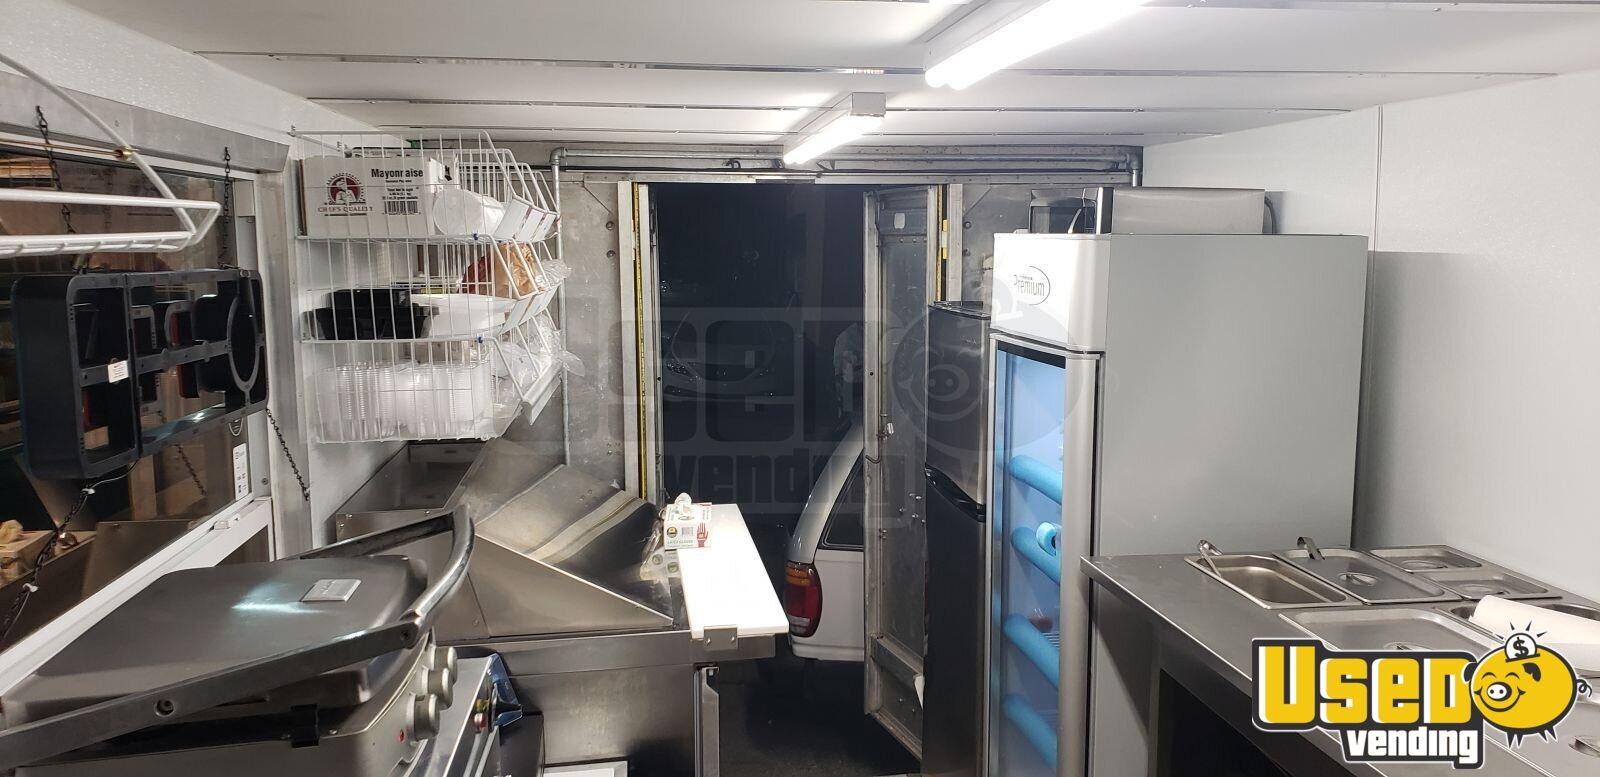 2018 1977 Gmc Kurbmaster Food Truck Generator Florida for Sale - 8